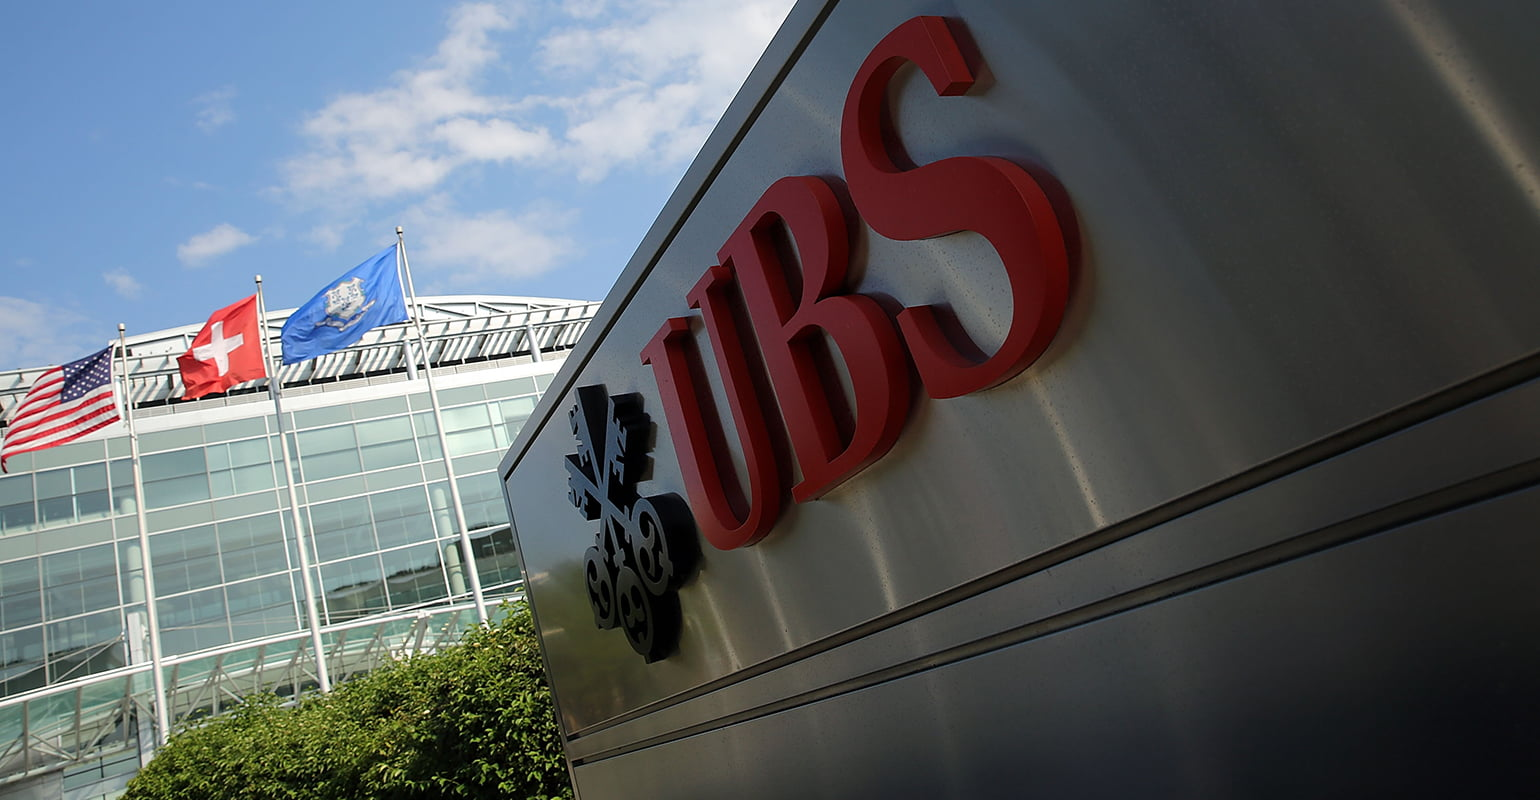 UBS CEO Says Staff Who Don't Want Vaccine Can Work From Home